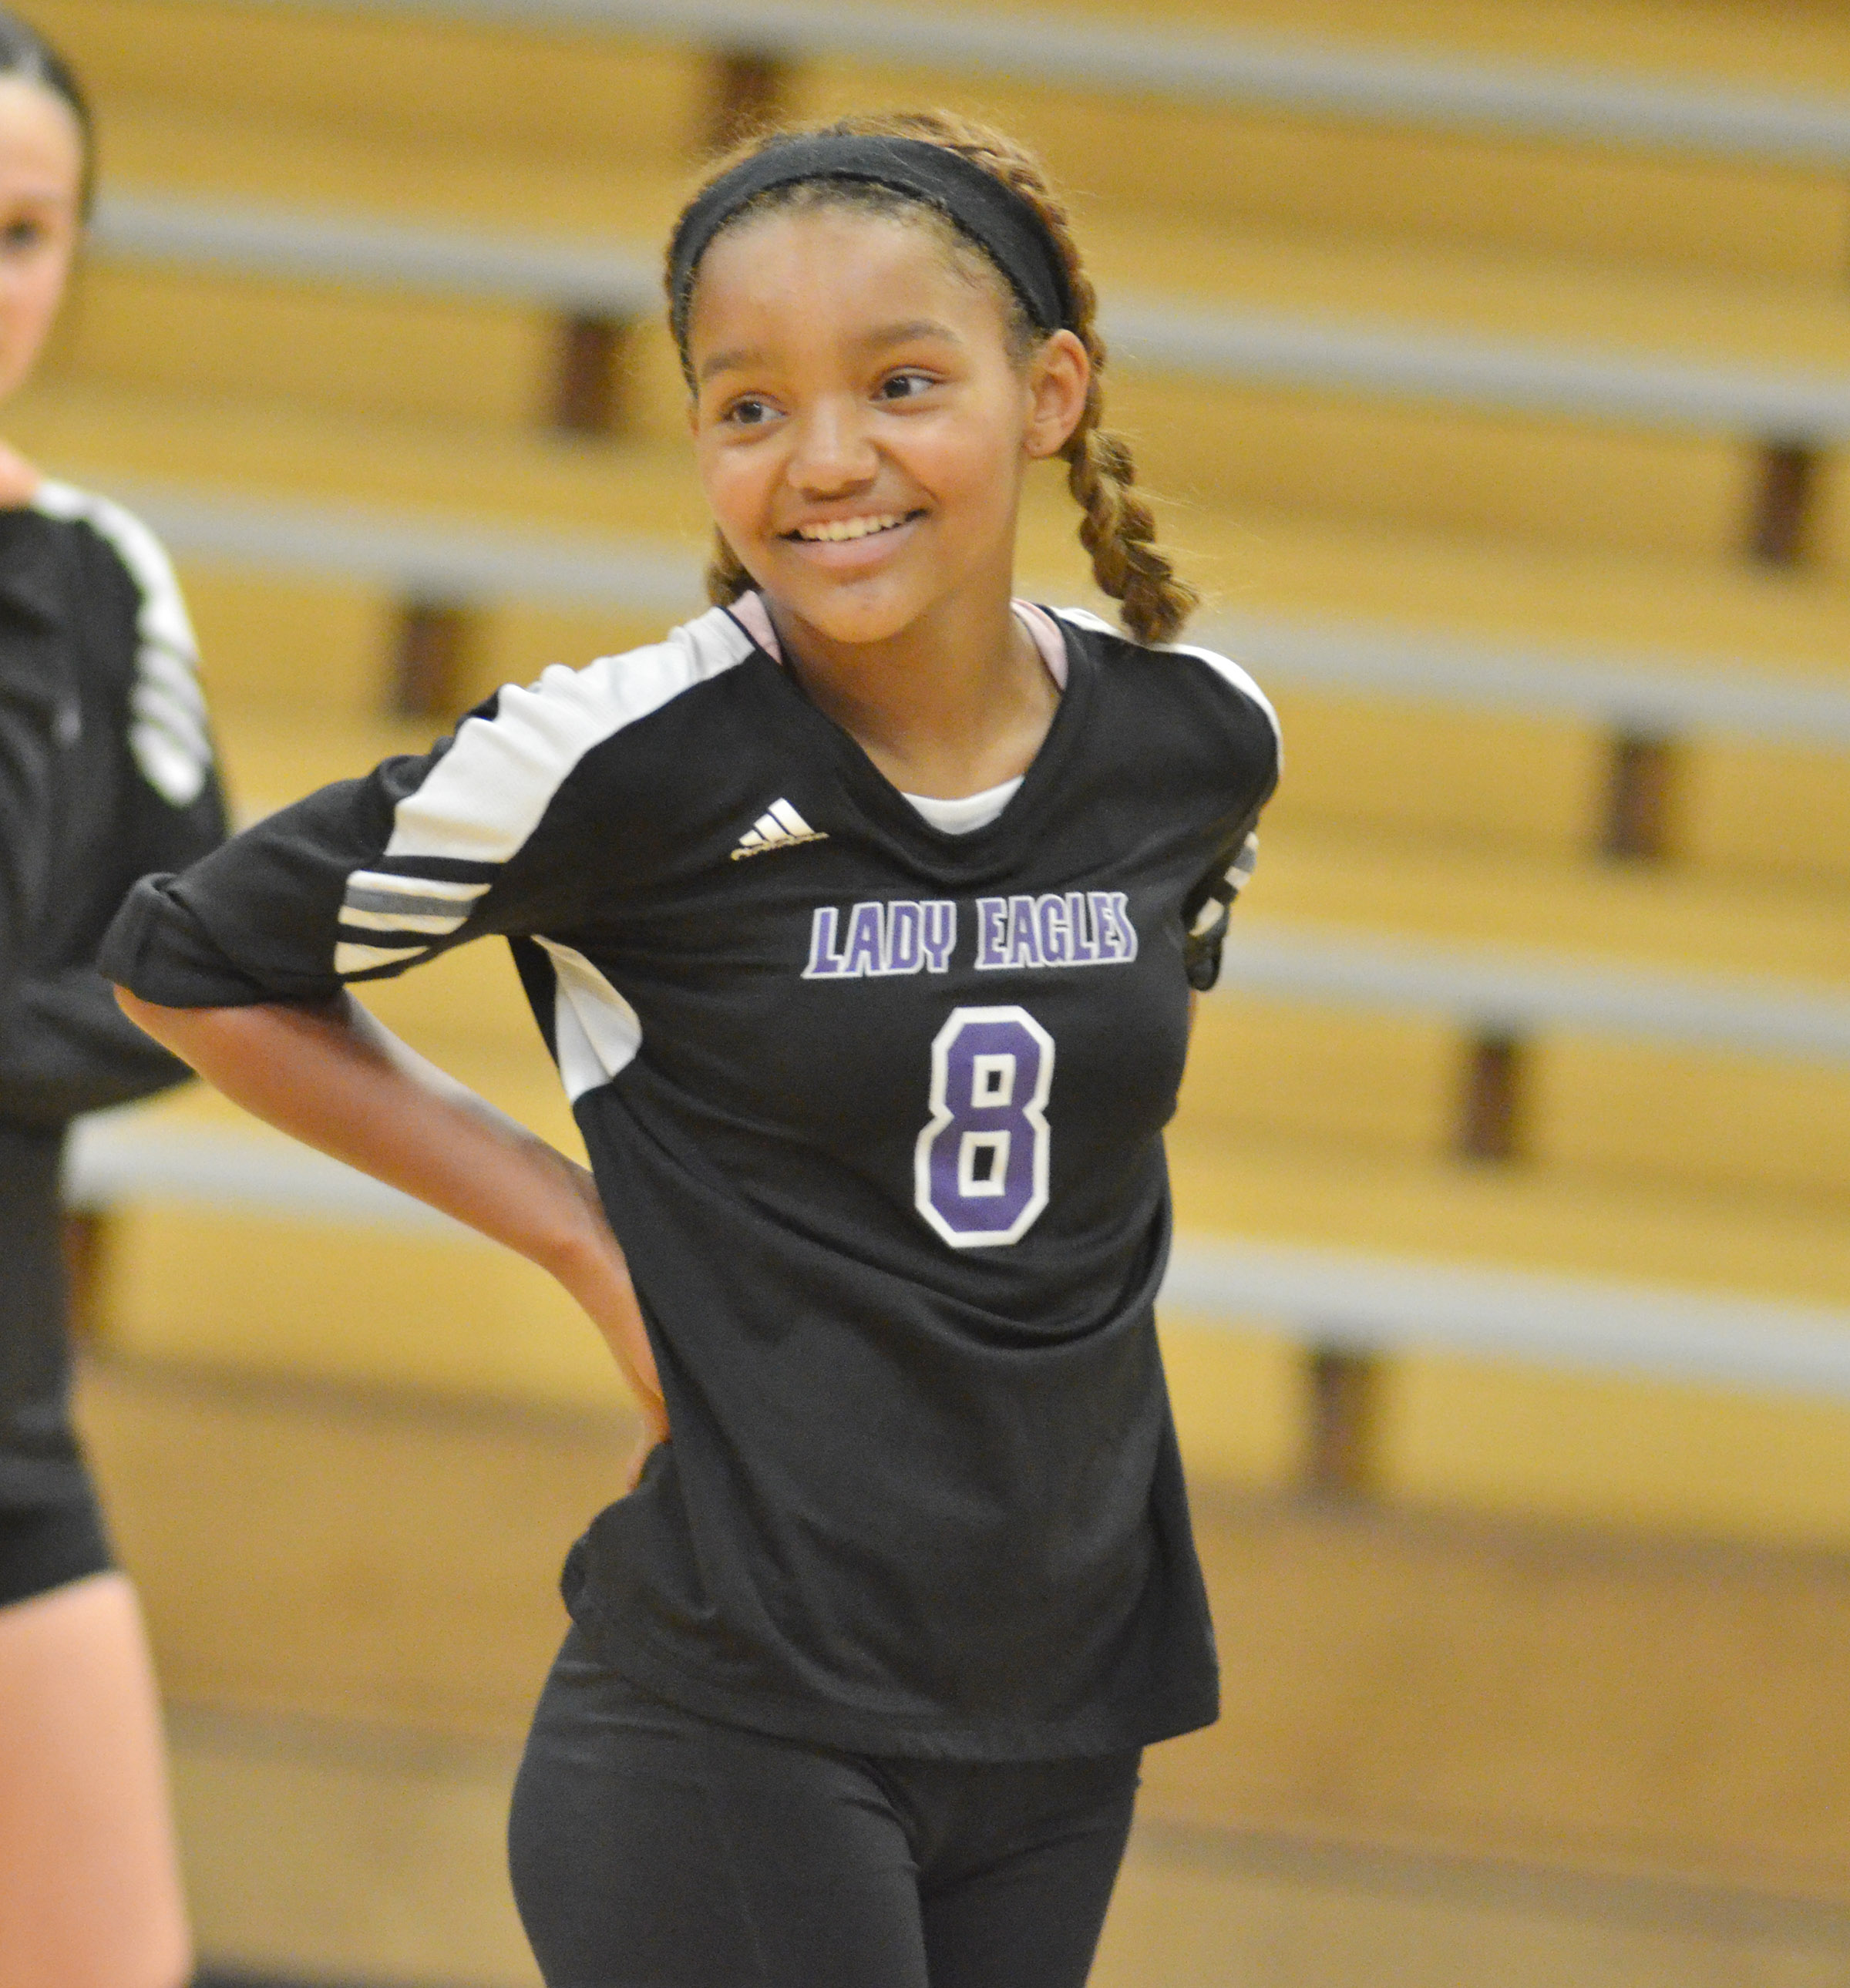 Campbellsville Middle School eighth-grader Alexis Thomas smiles after getting a point for her team.